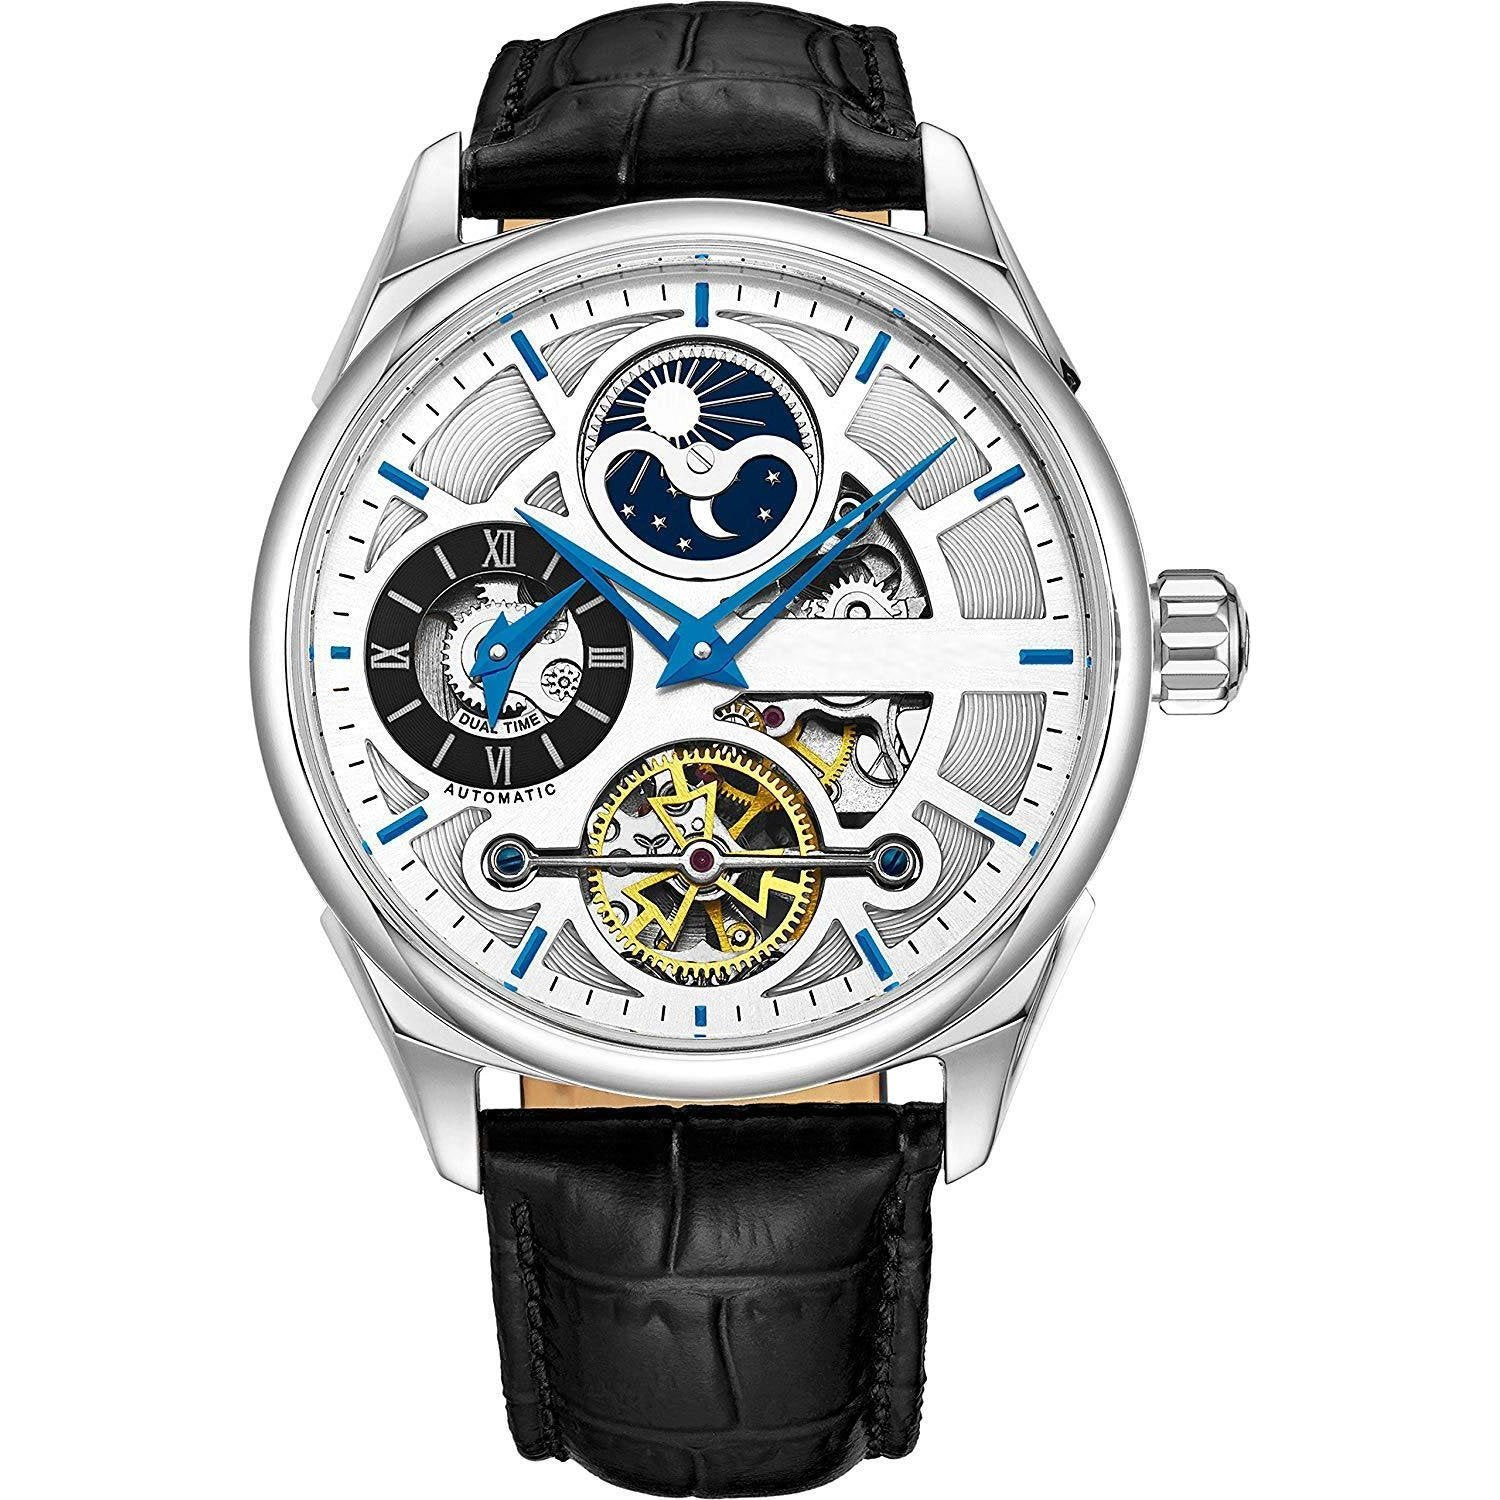 Mechanical Wristwatch For Men,Gold Plated/Stainless Steel